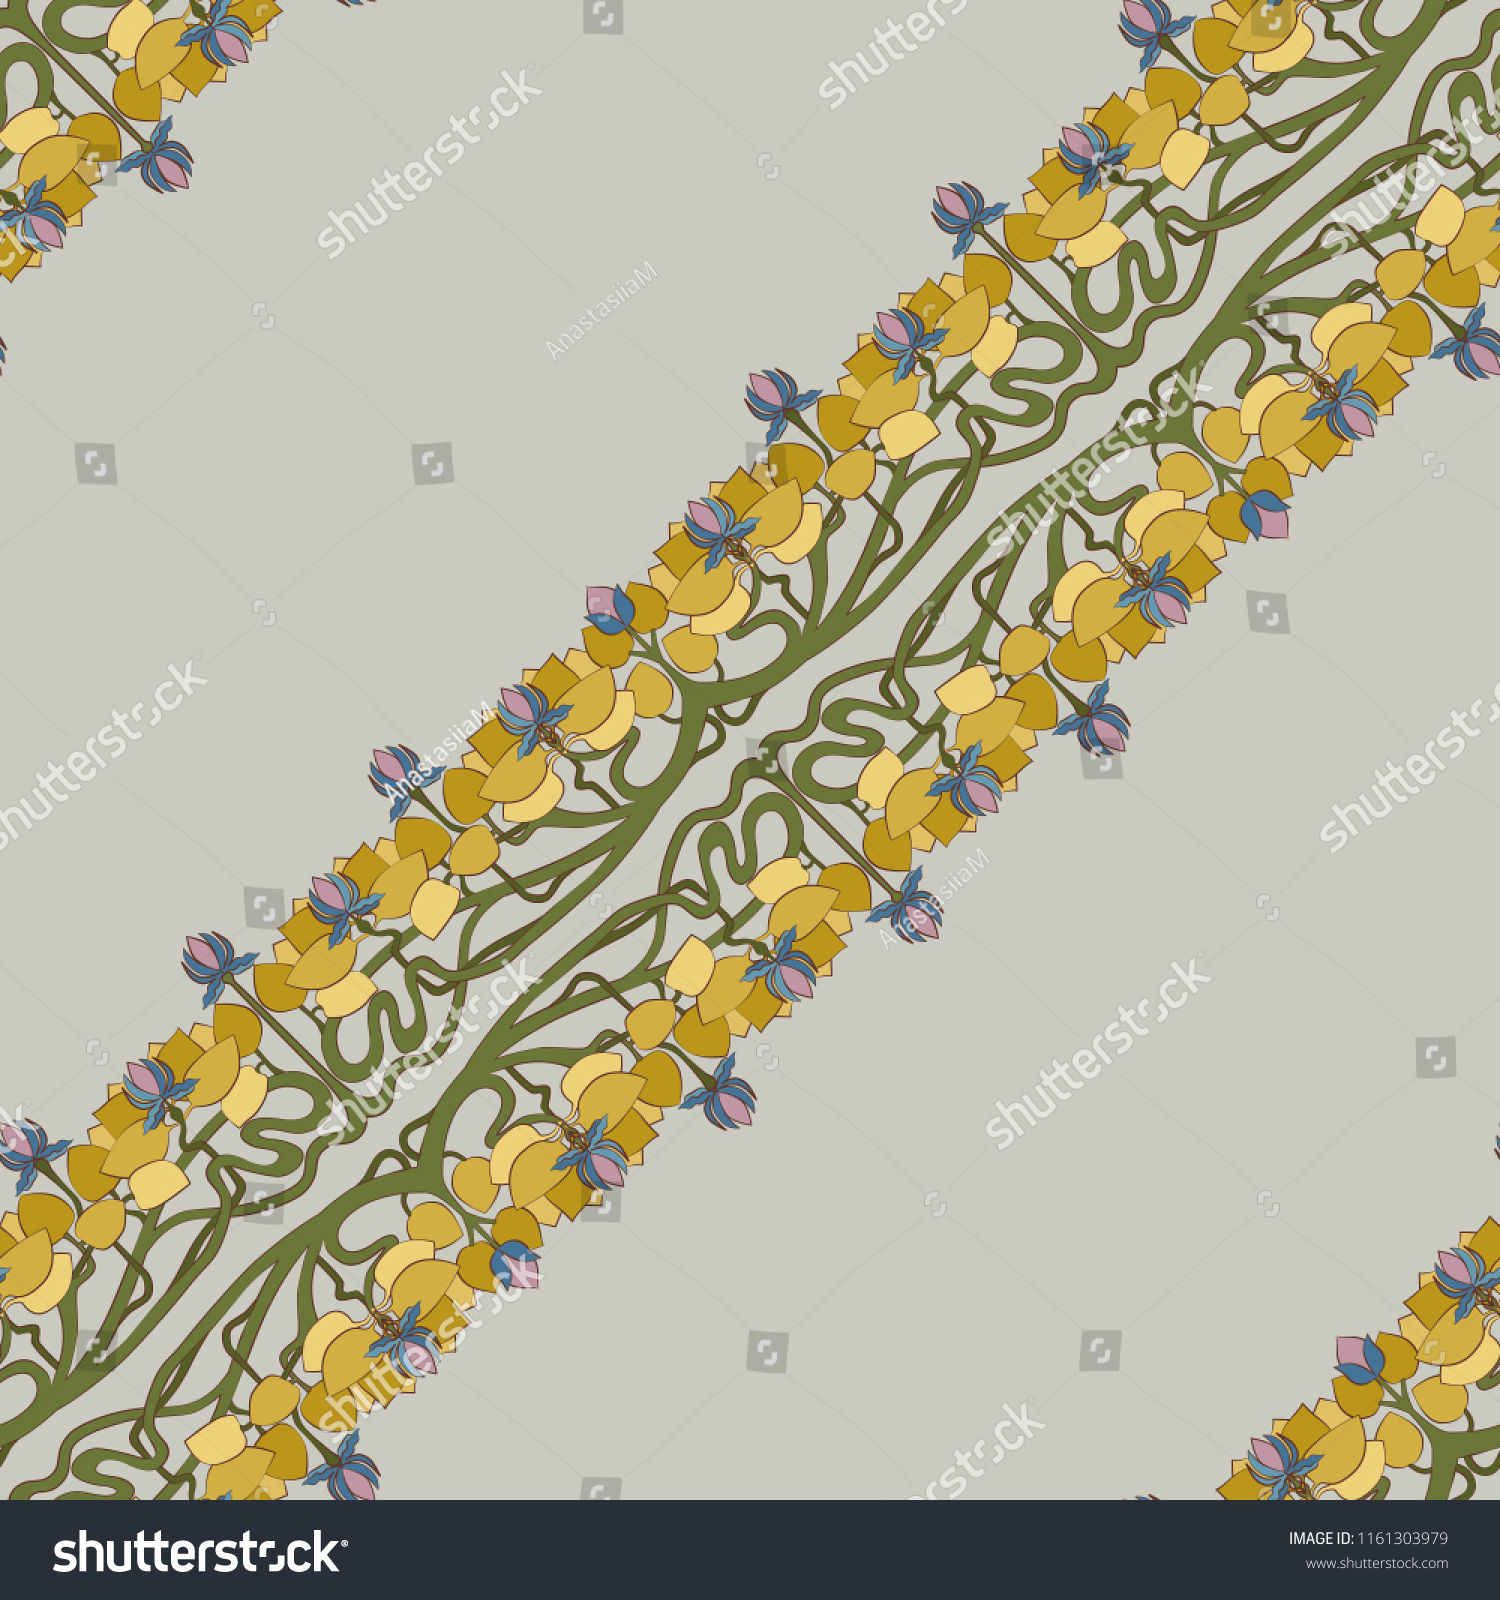 Art deco floral seamless pattern stylized stock vector royalty free art deco floral seamless pattern stylized lotus flowers with leaves and interlaced stems on grey izmirmasajfo